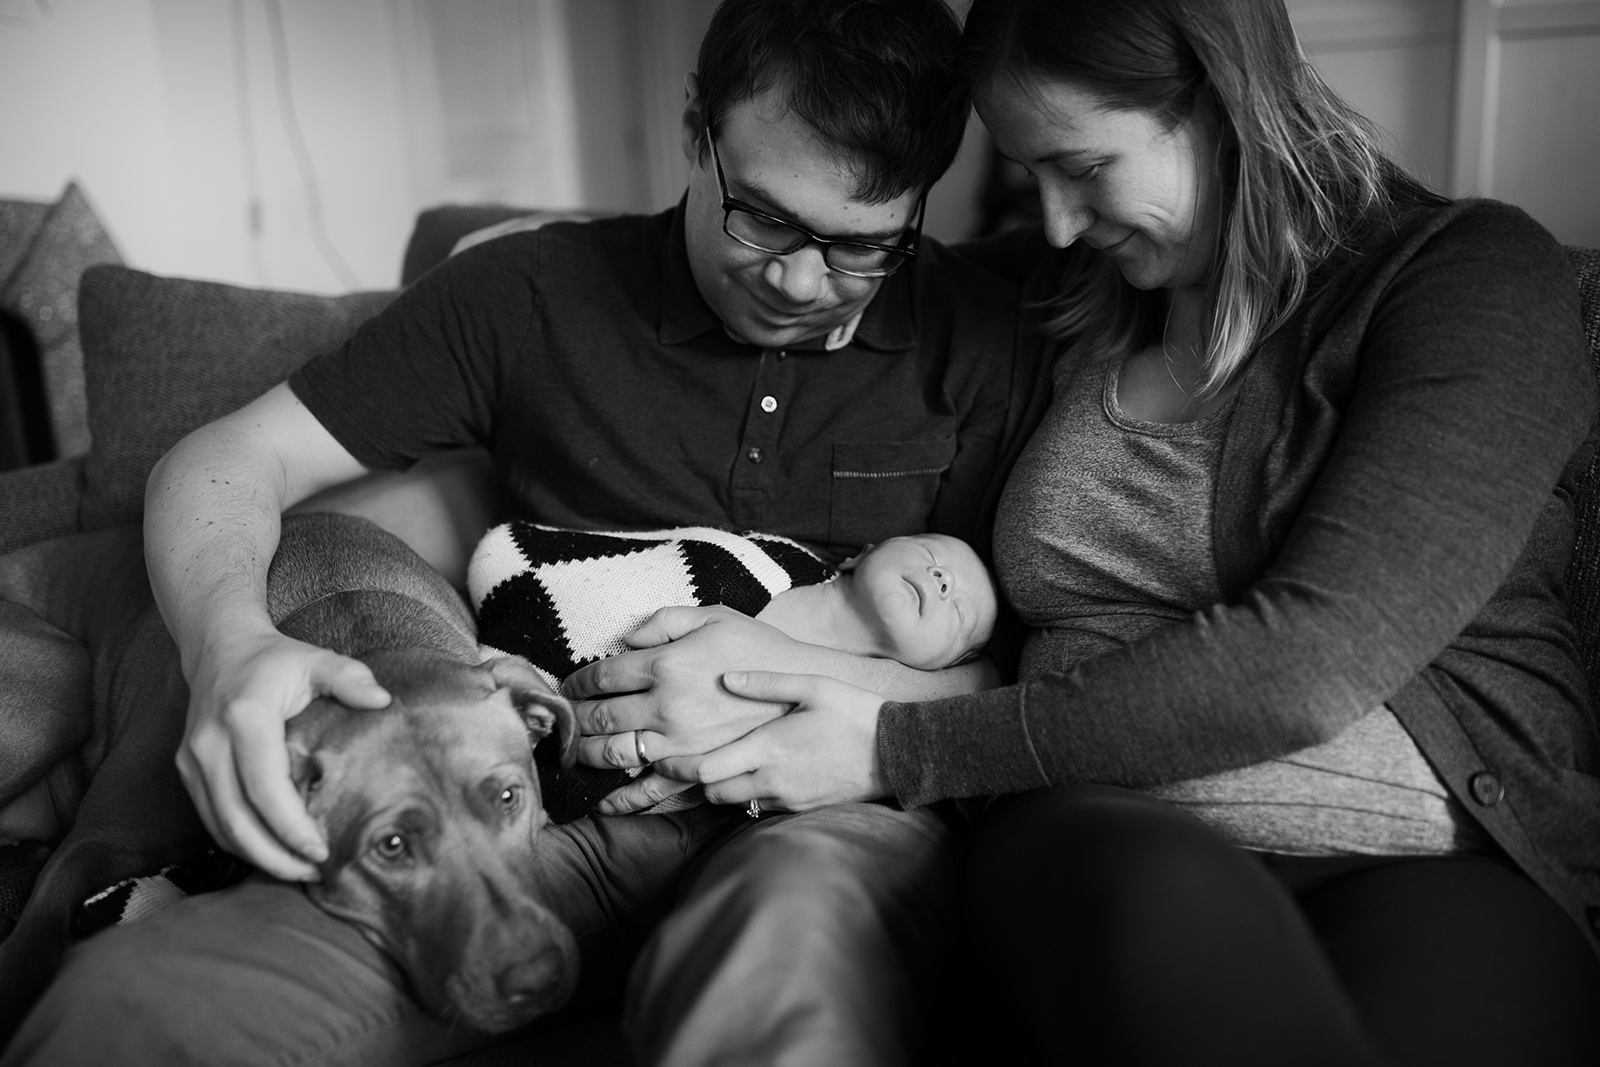 catie-bergman-seattle-family-newborn-lifestyle-photography-dog3.jpg